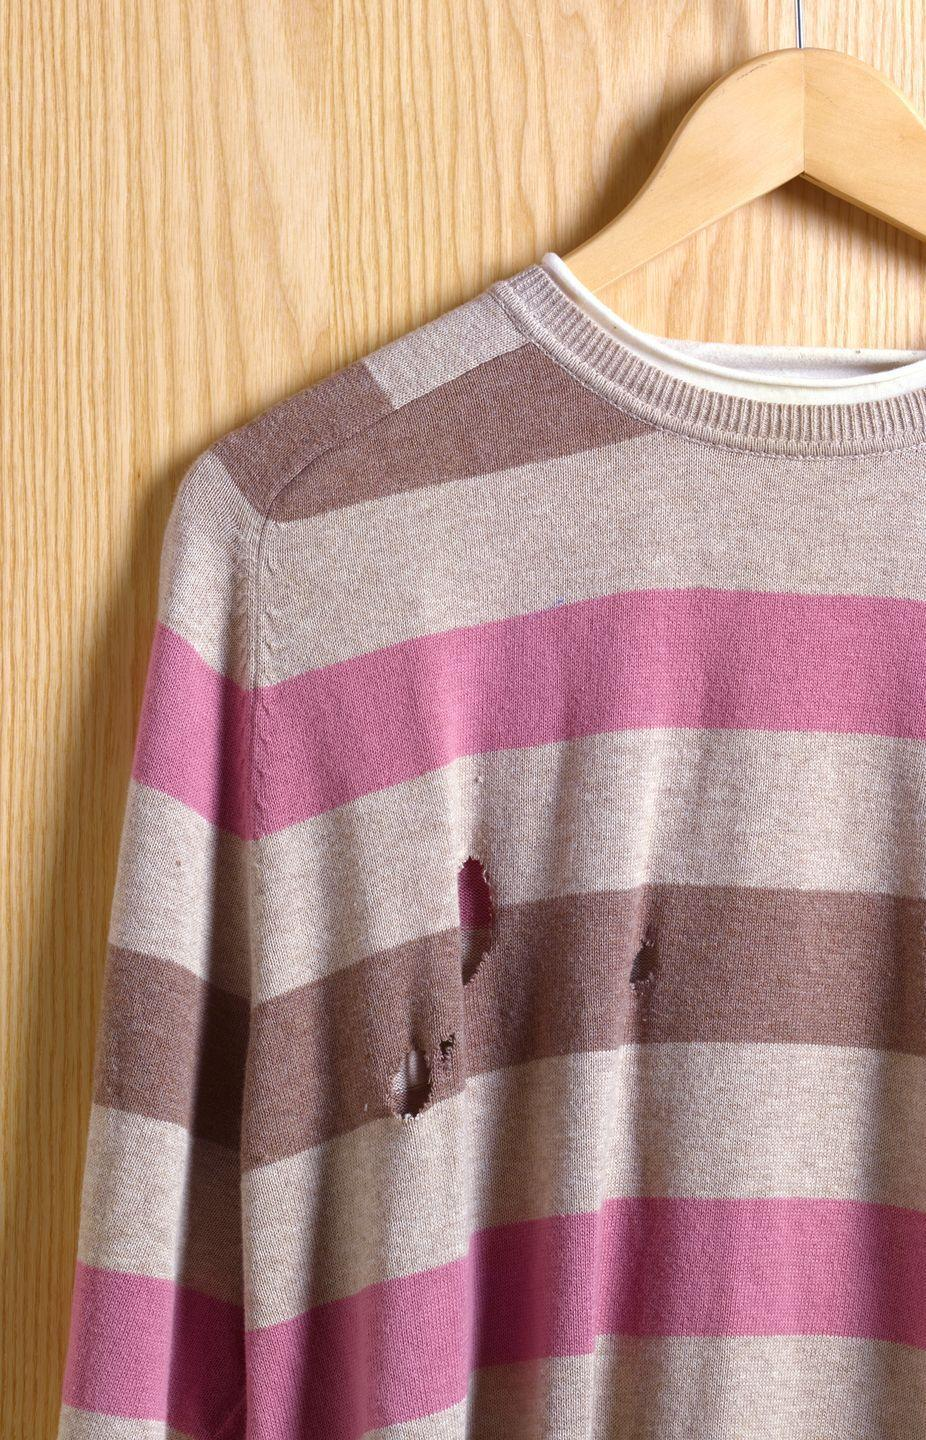 <p>You can find a ton of steals when shopping for vintage clothing, but it's best to closely inspect items before making a purchase. Between stains, tears, and smells, you don't want to get stuck with a damaged item and no where to return it. </p>